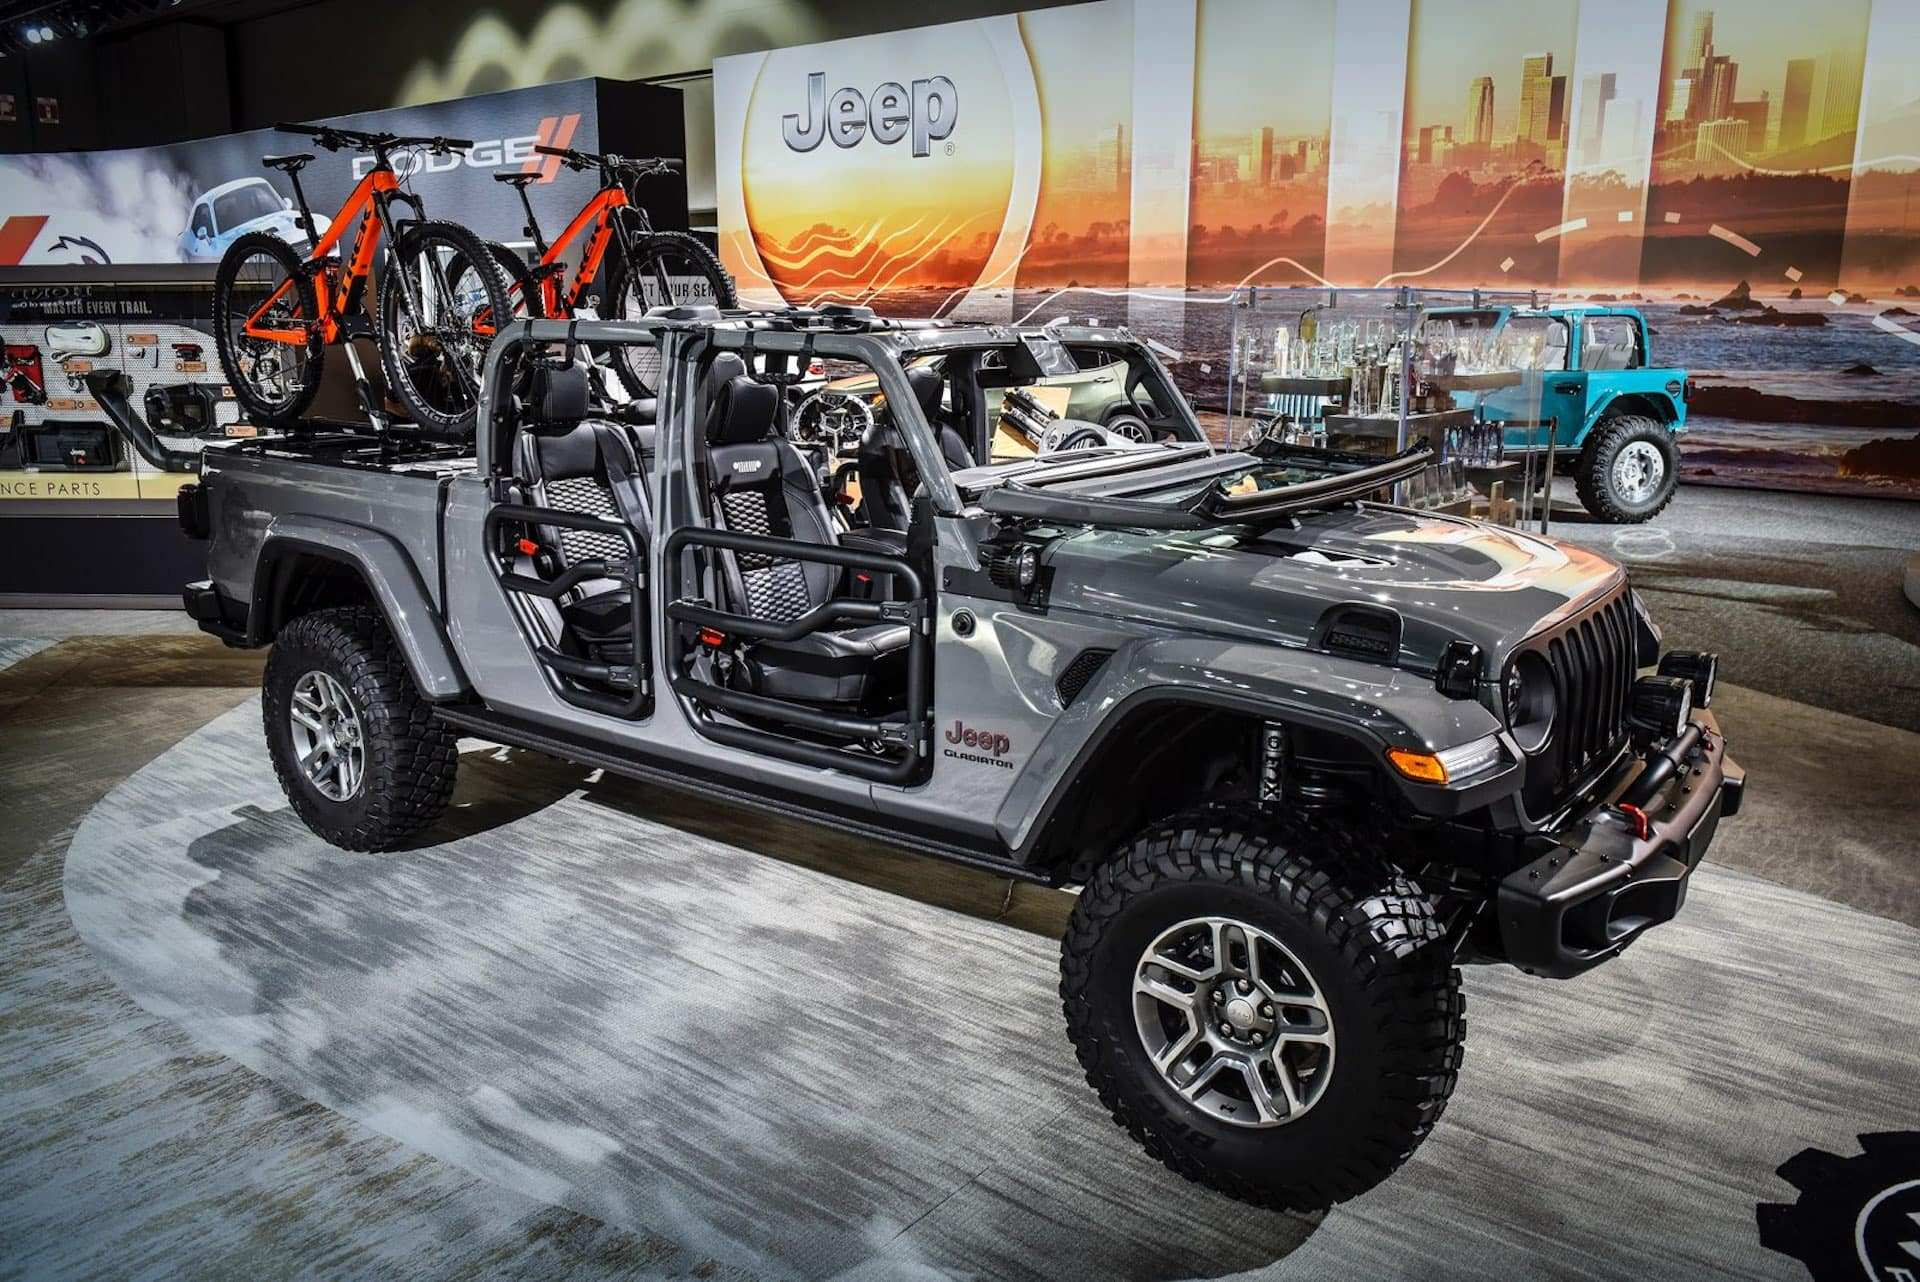 99 The Best 2020 Jeep Gladiator Availability Date Release Date And Concept